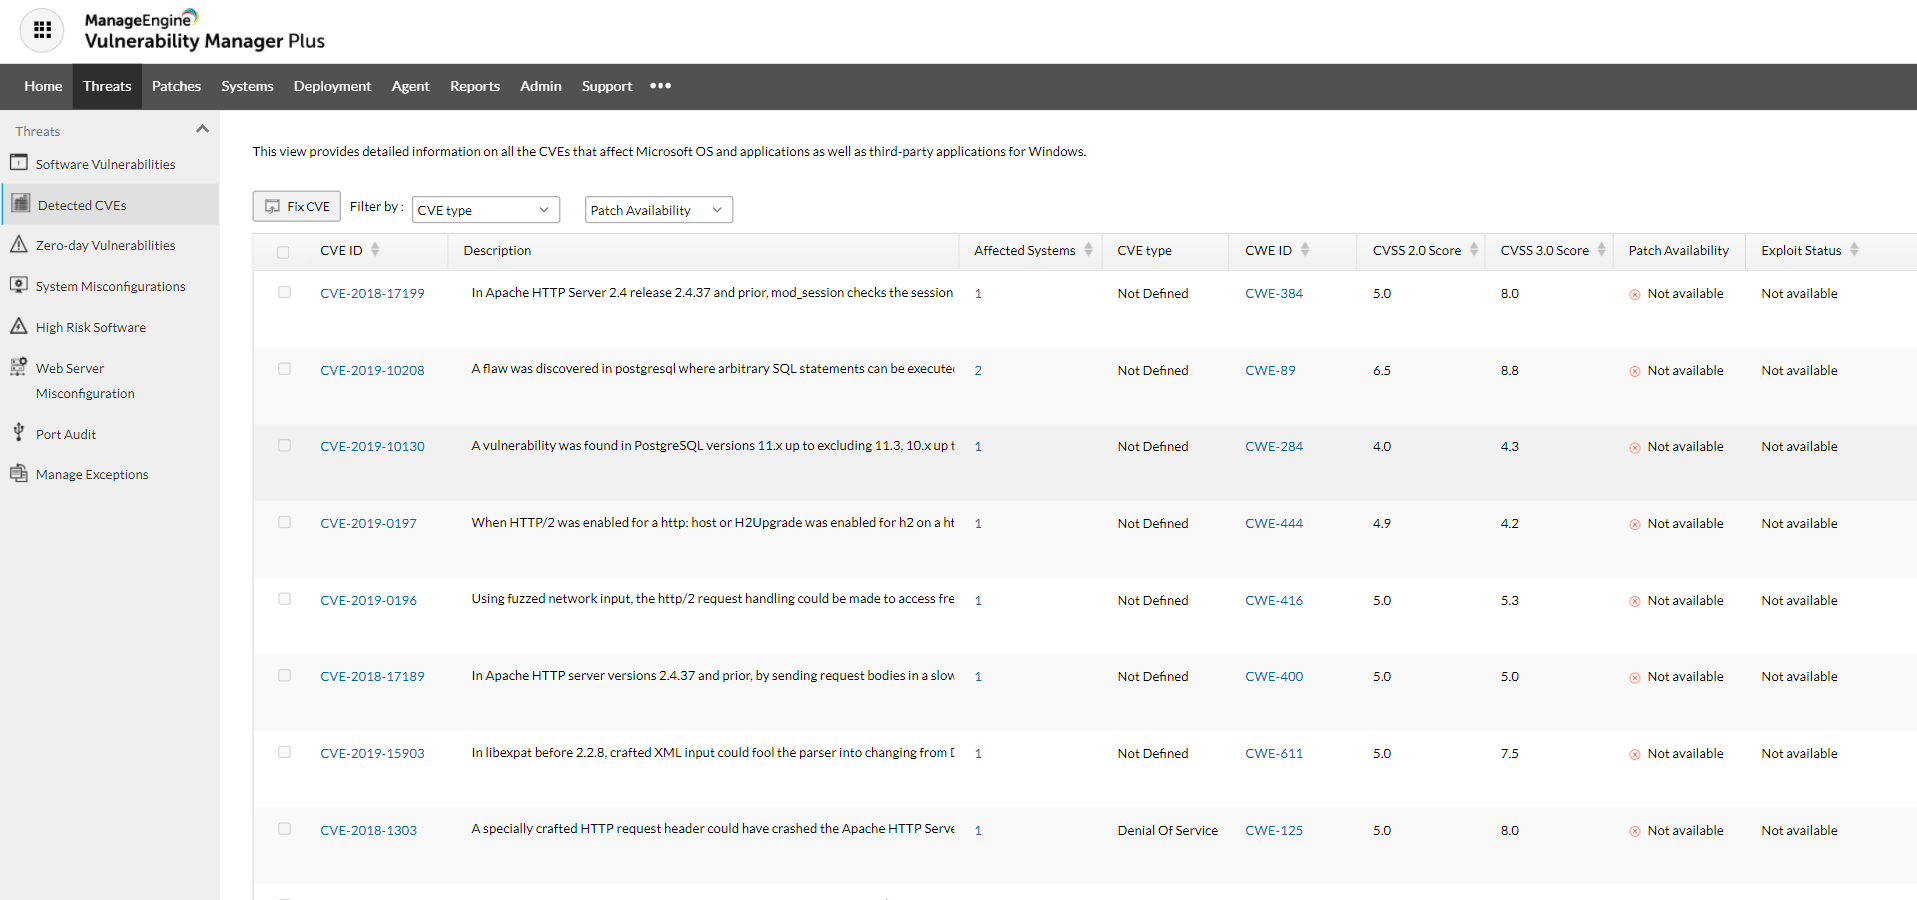 Detected CVEs view in ManageEngine's vulnerability assessment tool